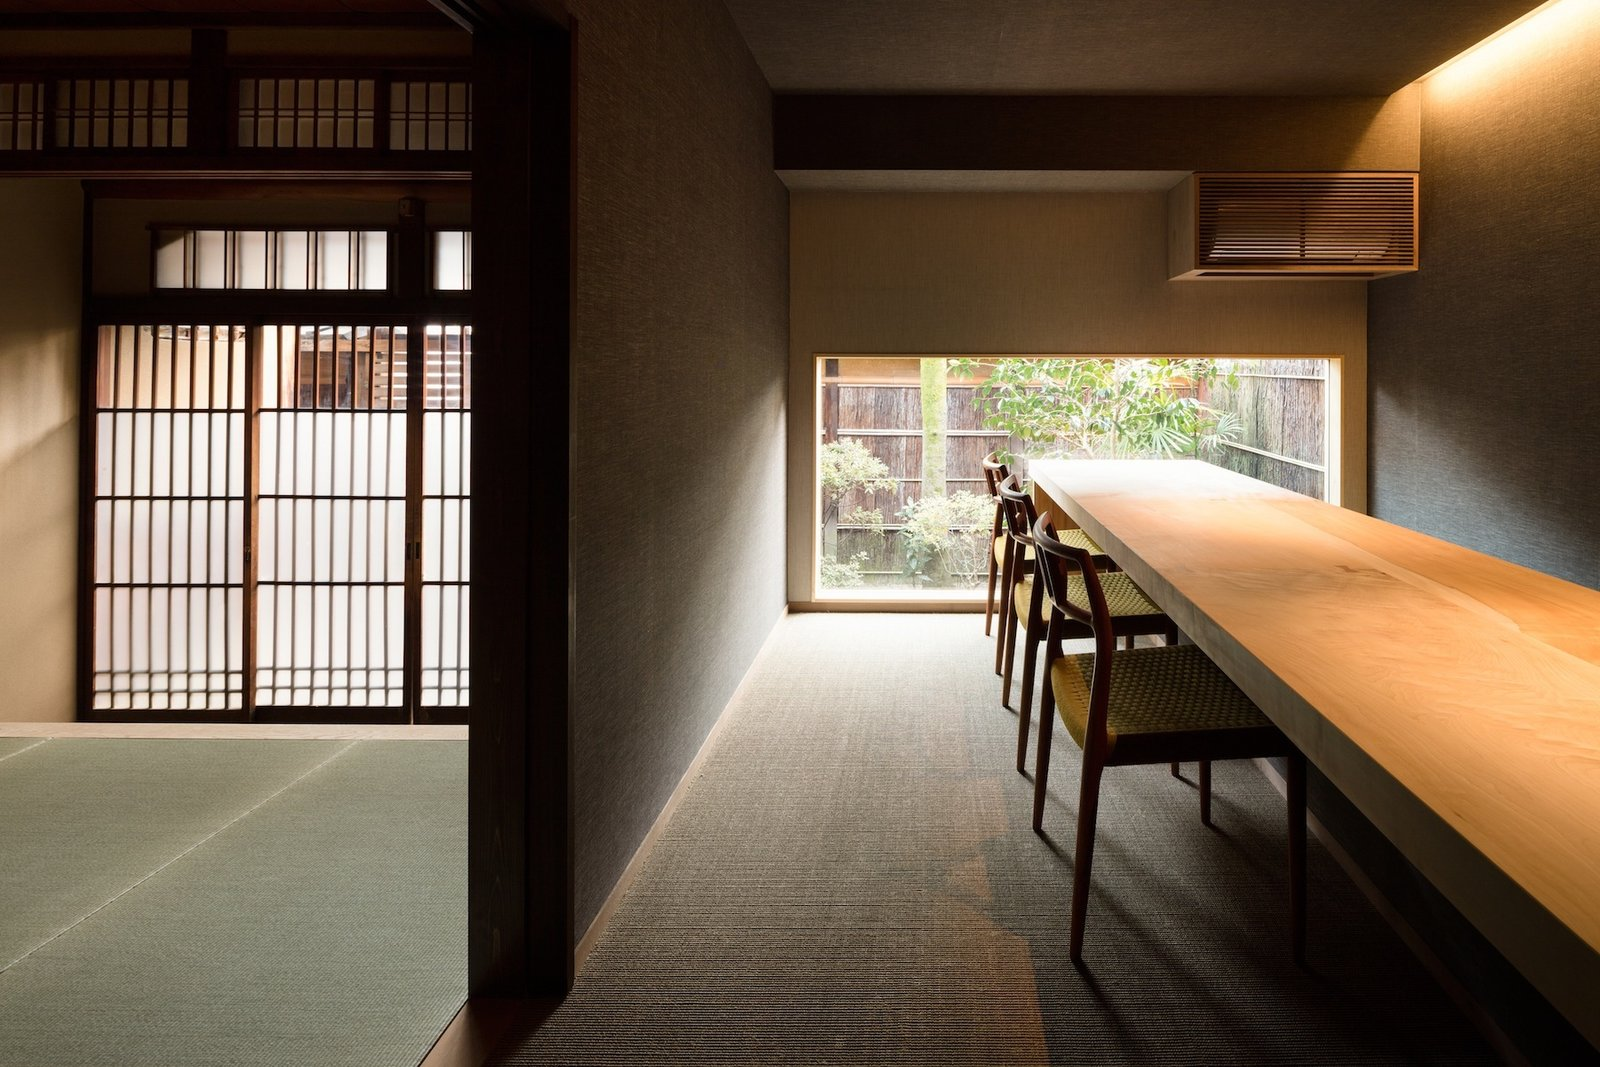 Dining Room, Table, Chair, Recessed Lighting, and Carpet Floor  Photo 10 of 13 in A Minimalist Townhouse Provides Serene Accommodations in Historic Kyoto